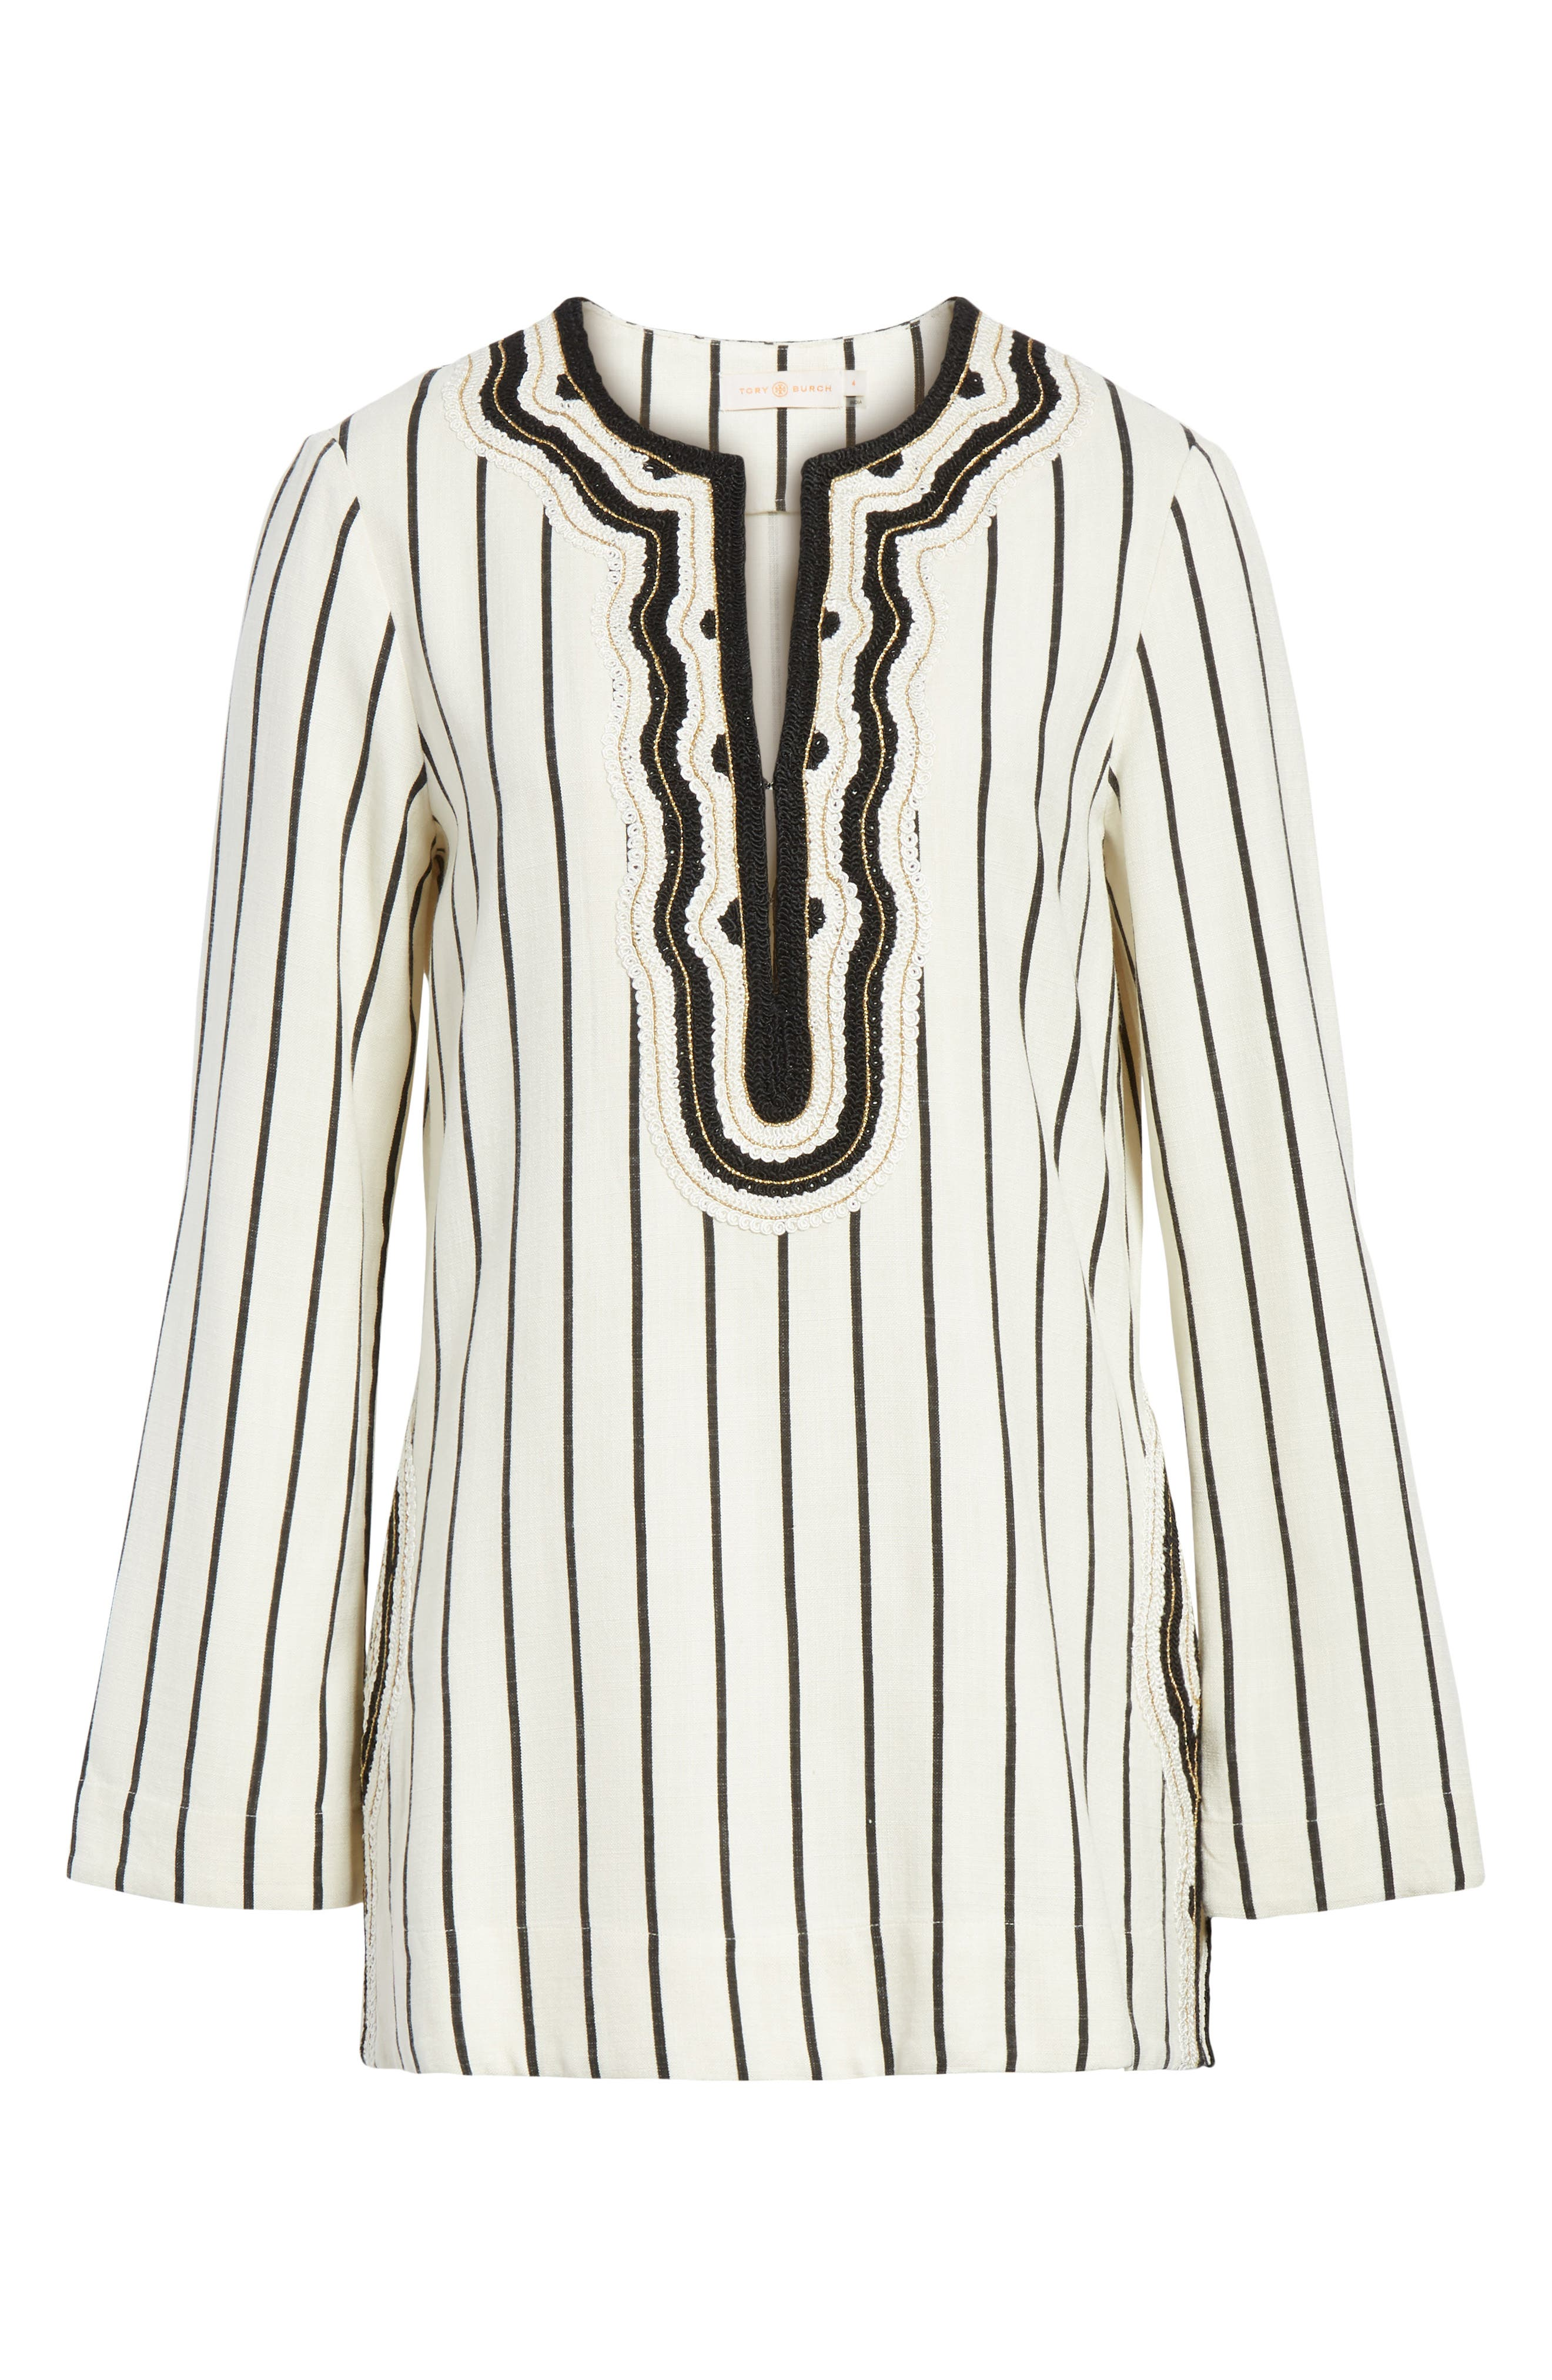 Tory Embellished Stripe Tunic,                             Alternate thumbnail 6, color,                             New Ivory/ Black